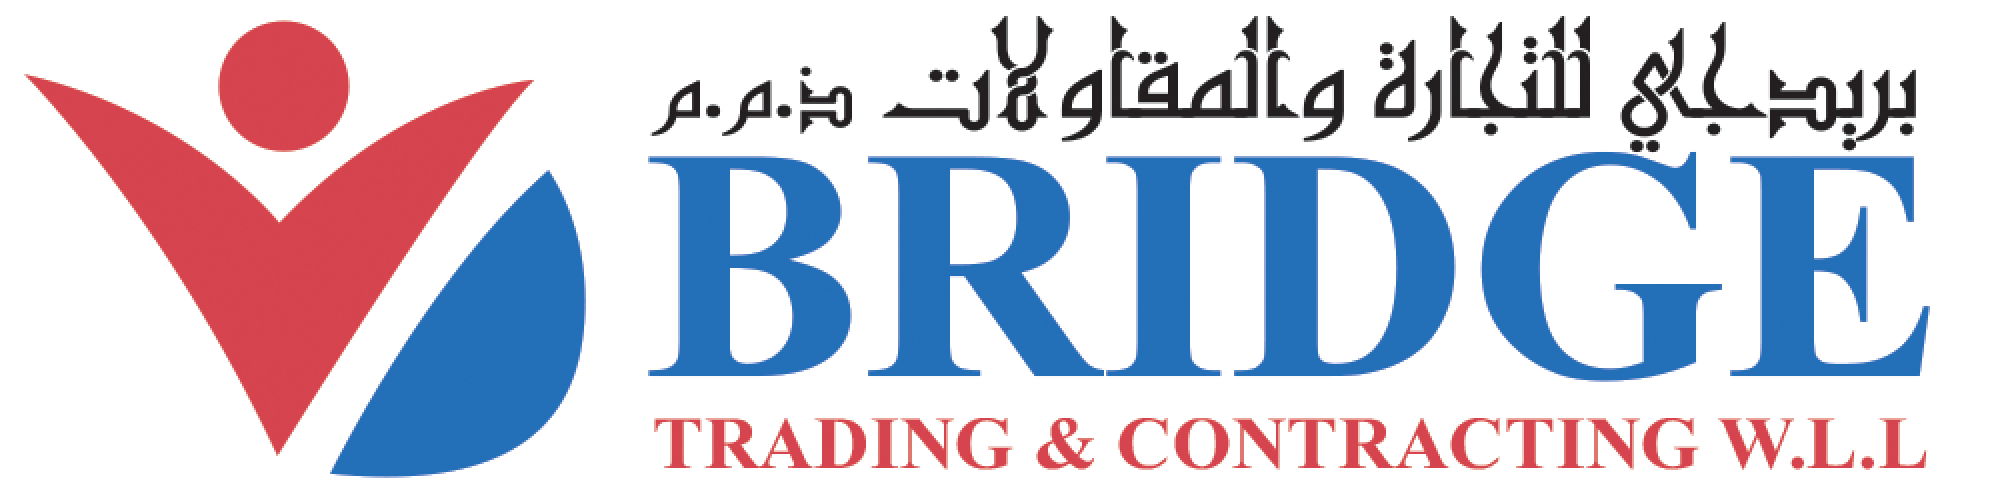 Bridge Trading & Contracting W.L.L